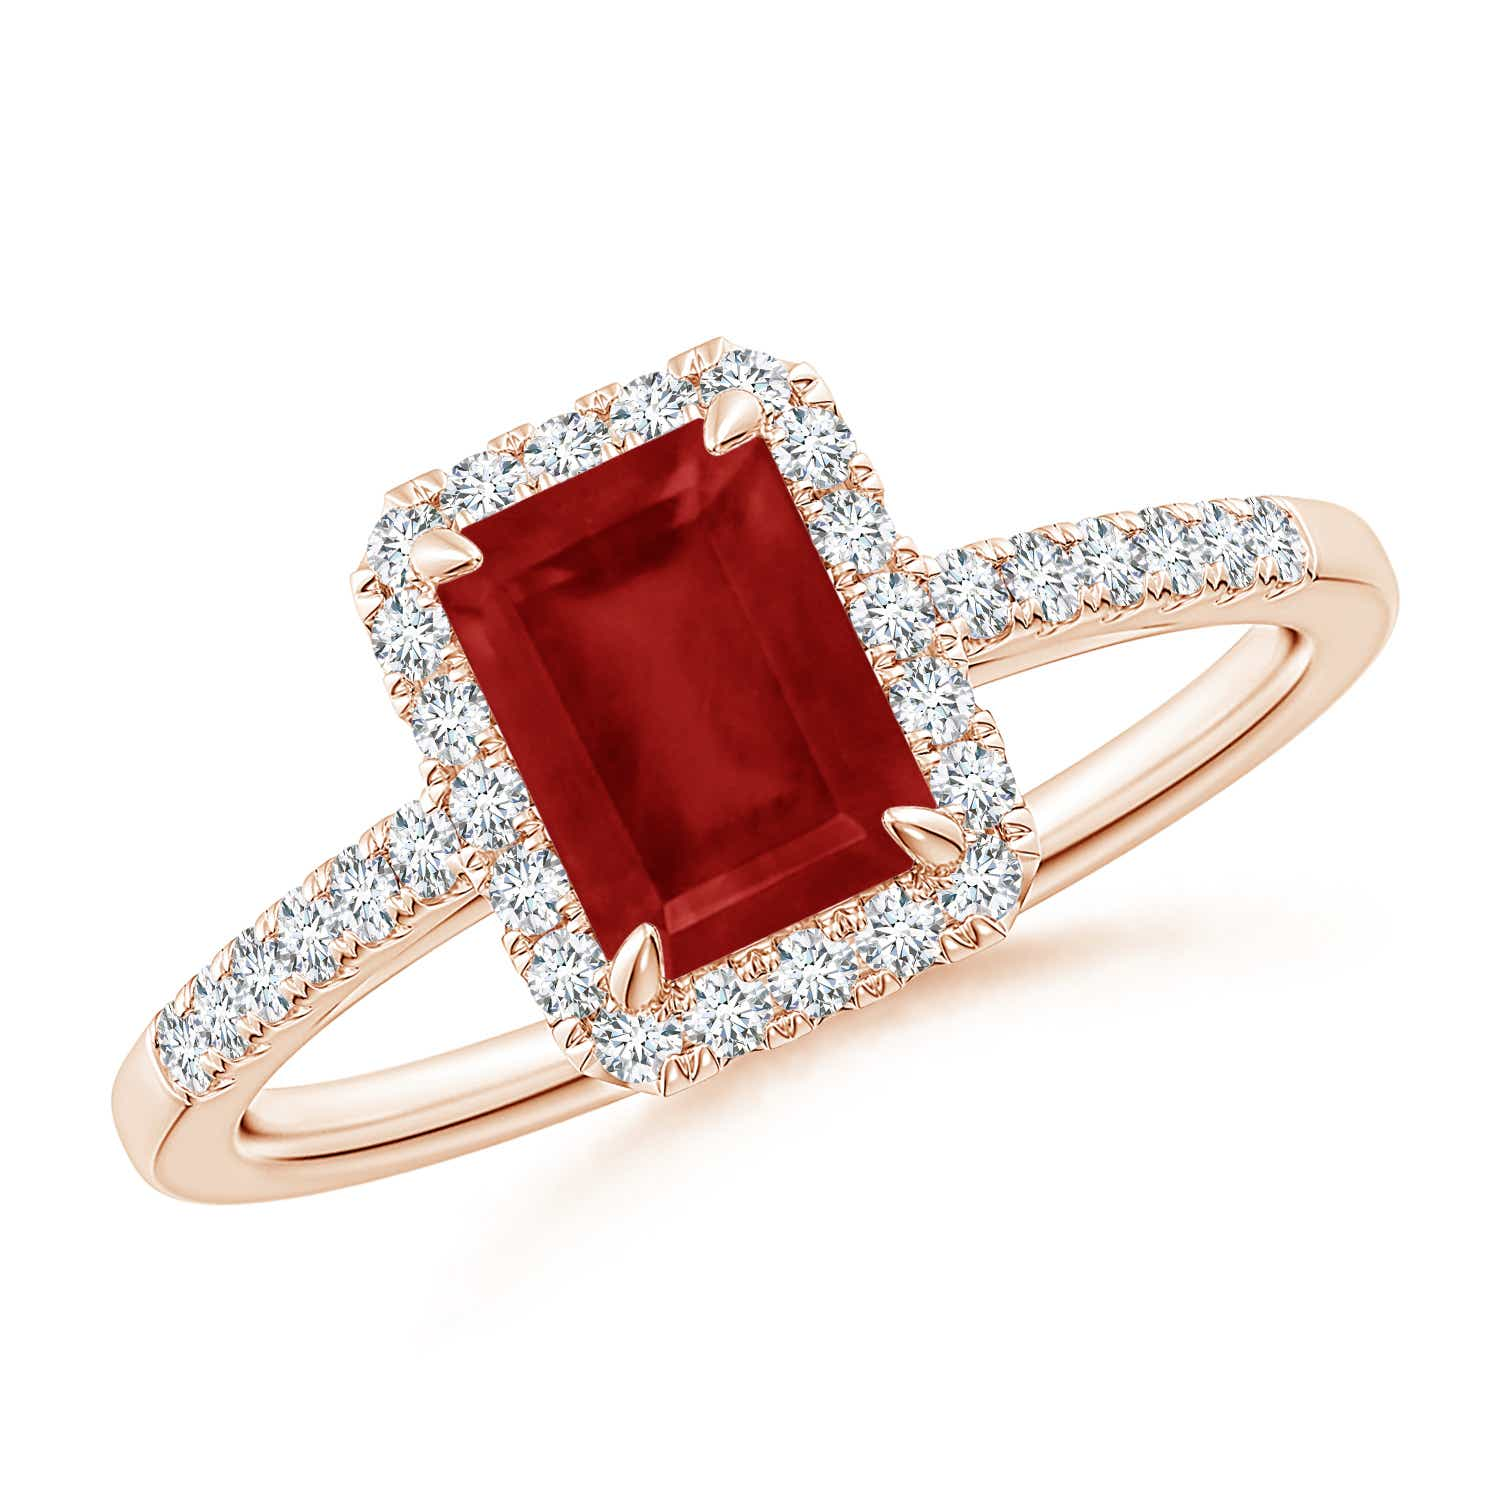 Emerald-Cut Ruby Ring with Diamond Halo